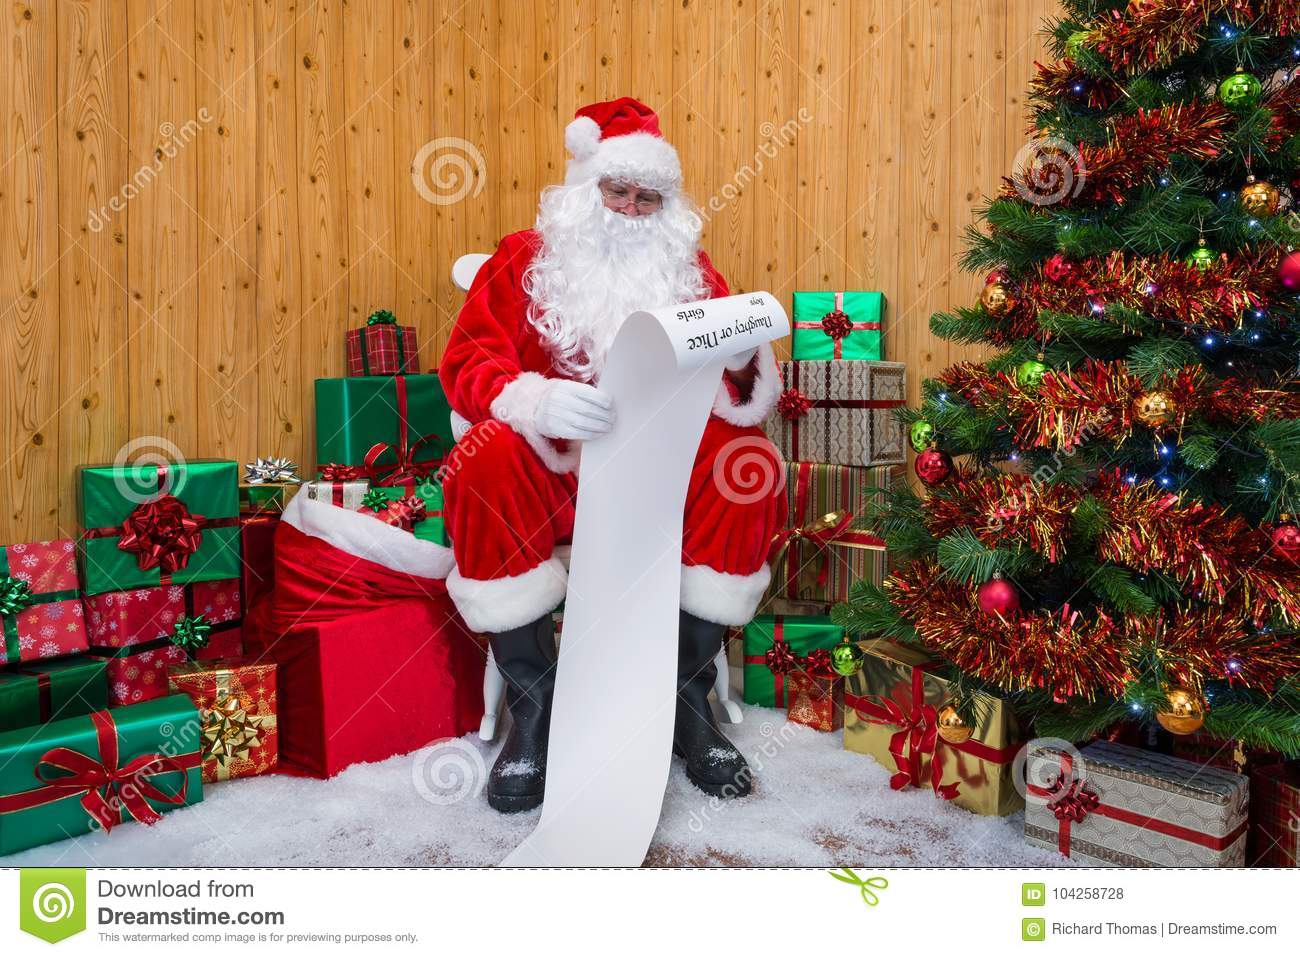 Santa Claus in a grotto checking the naughty or nice list